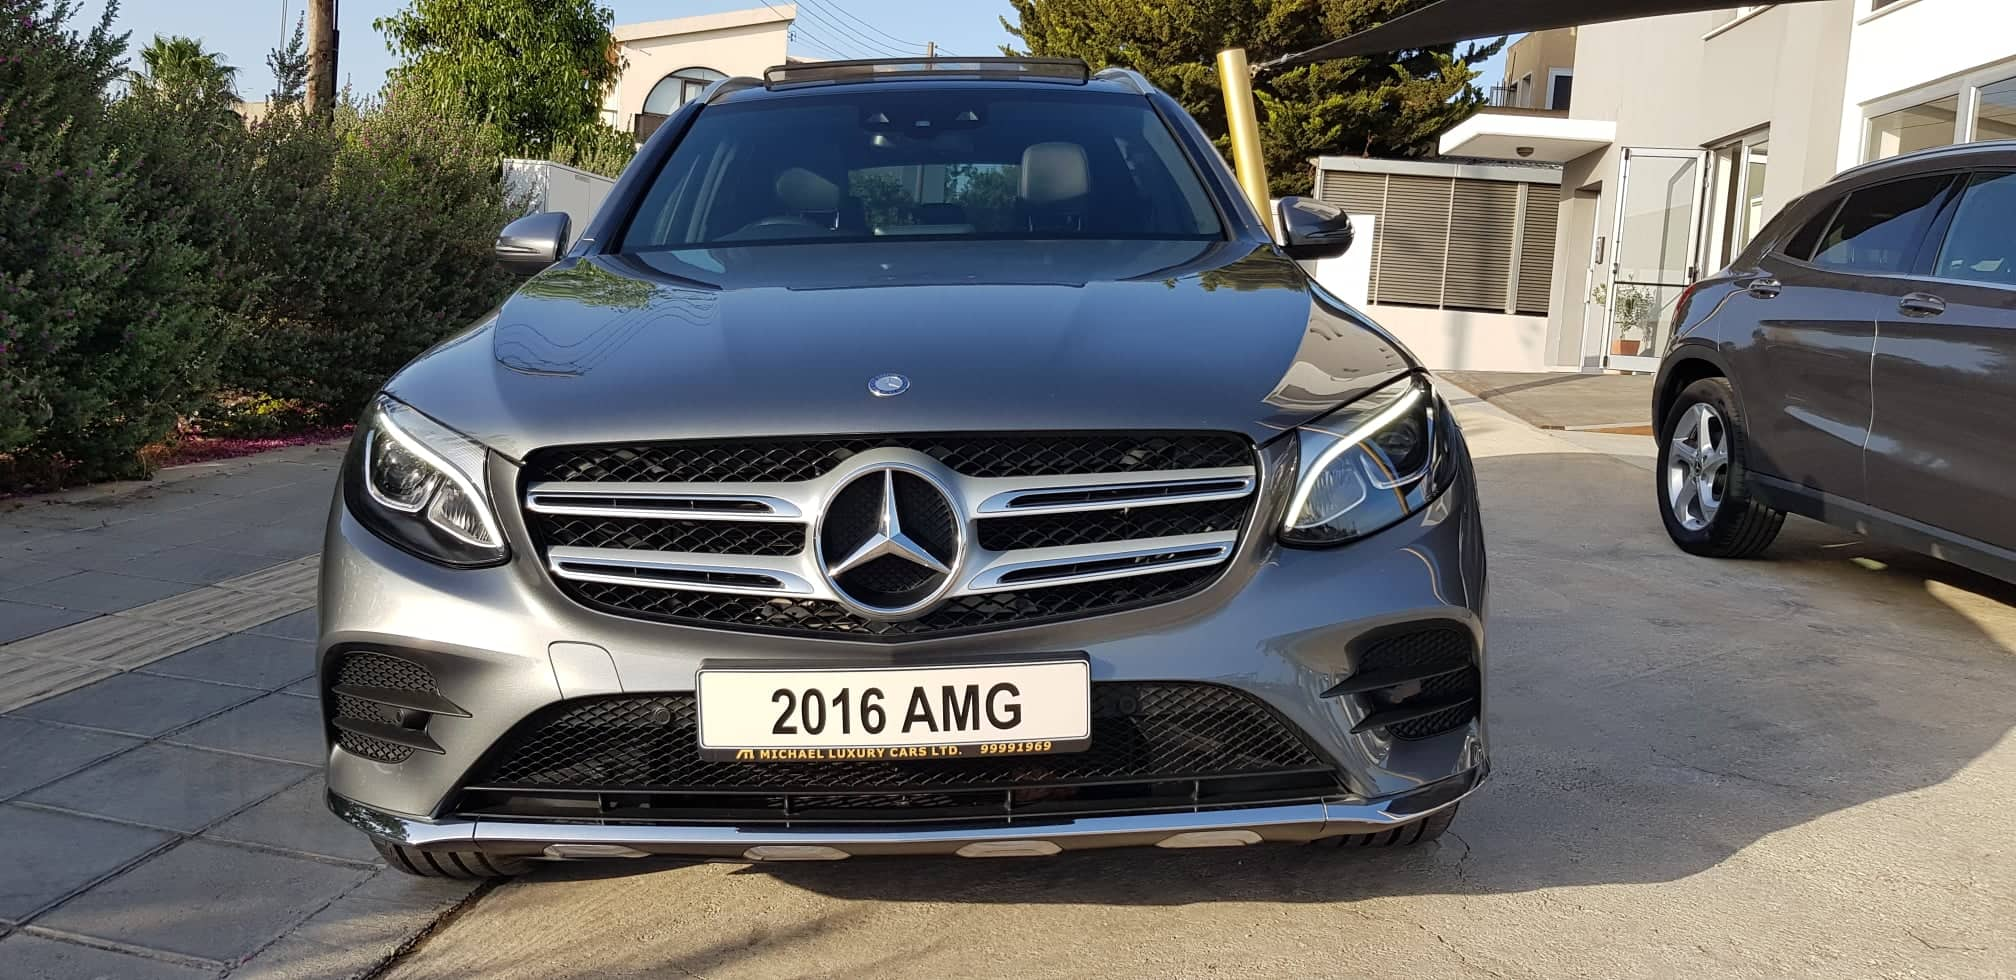 Mercedes GLC 250D AMG 4 MATIC